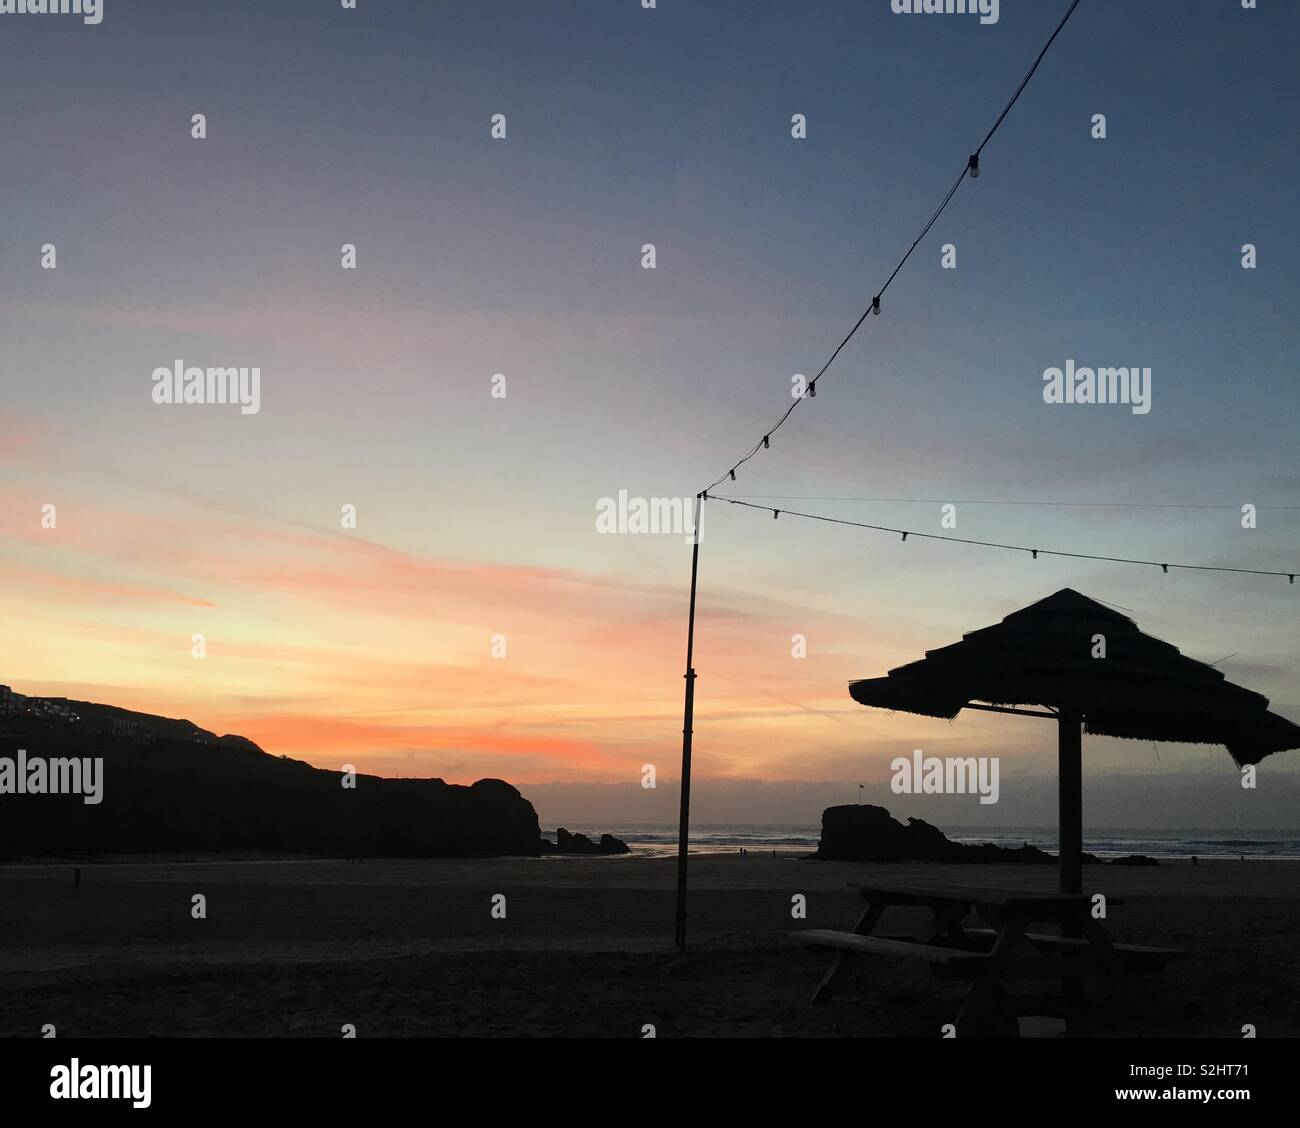 Sunset at Perranporth - Stock Image